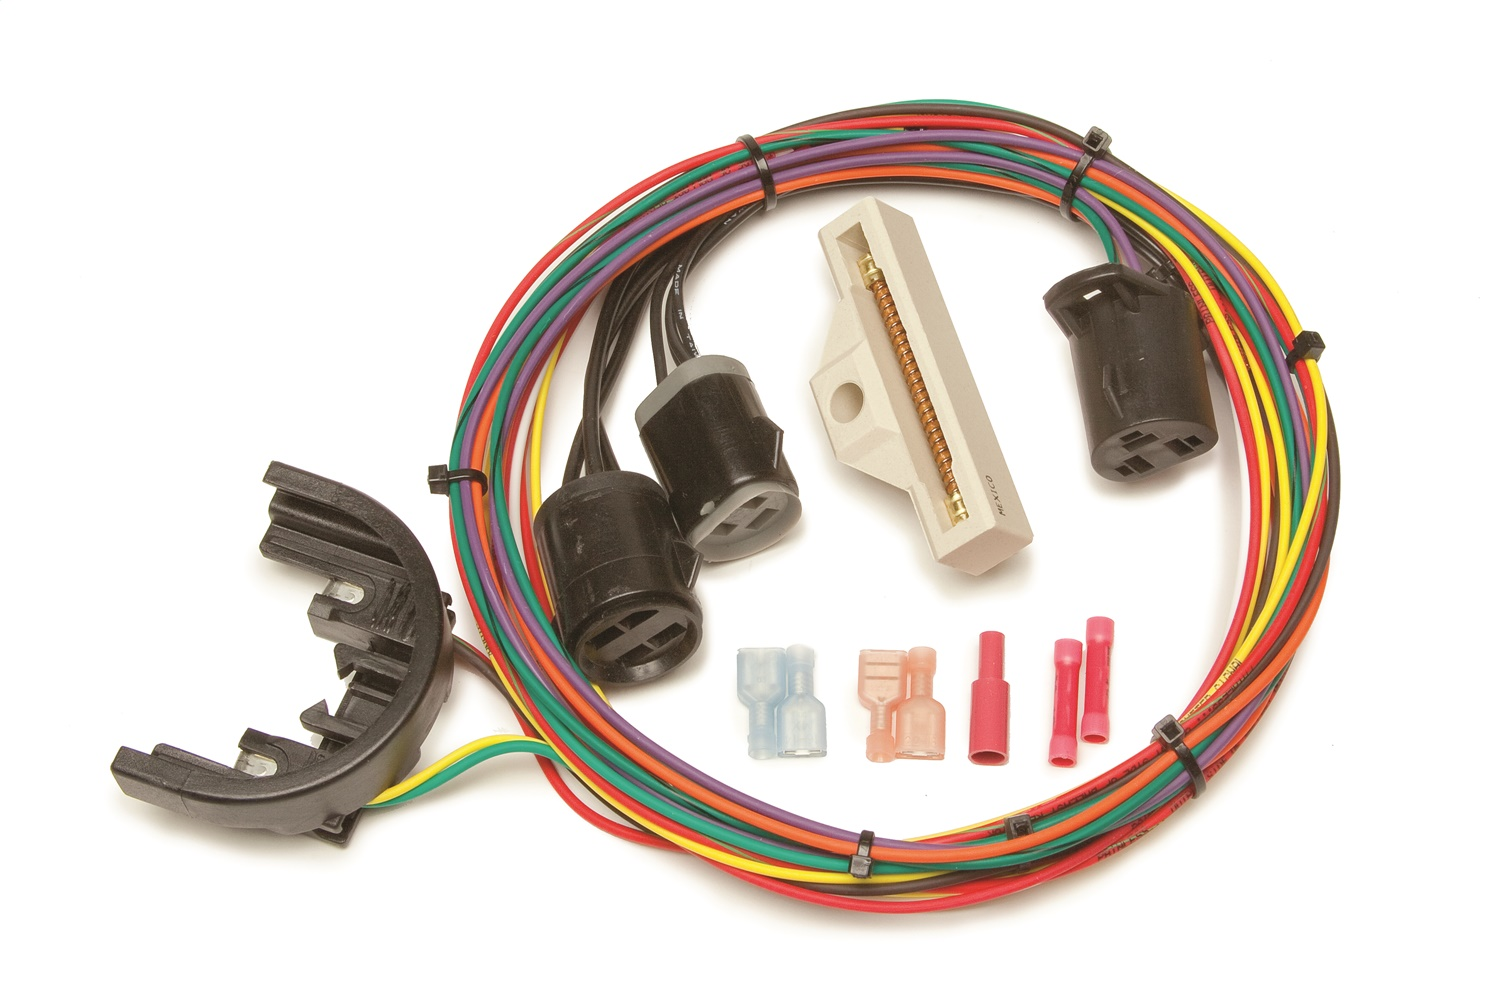 Painless Wiring 30819 DuraSpark II Ignition Harness